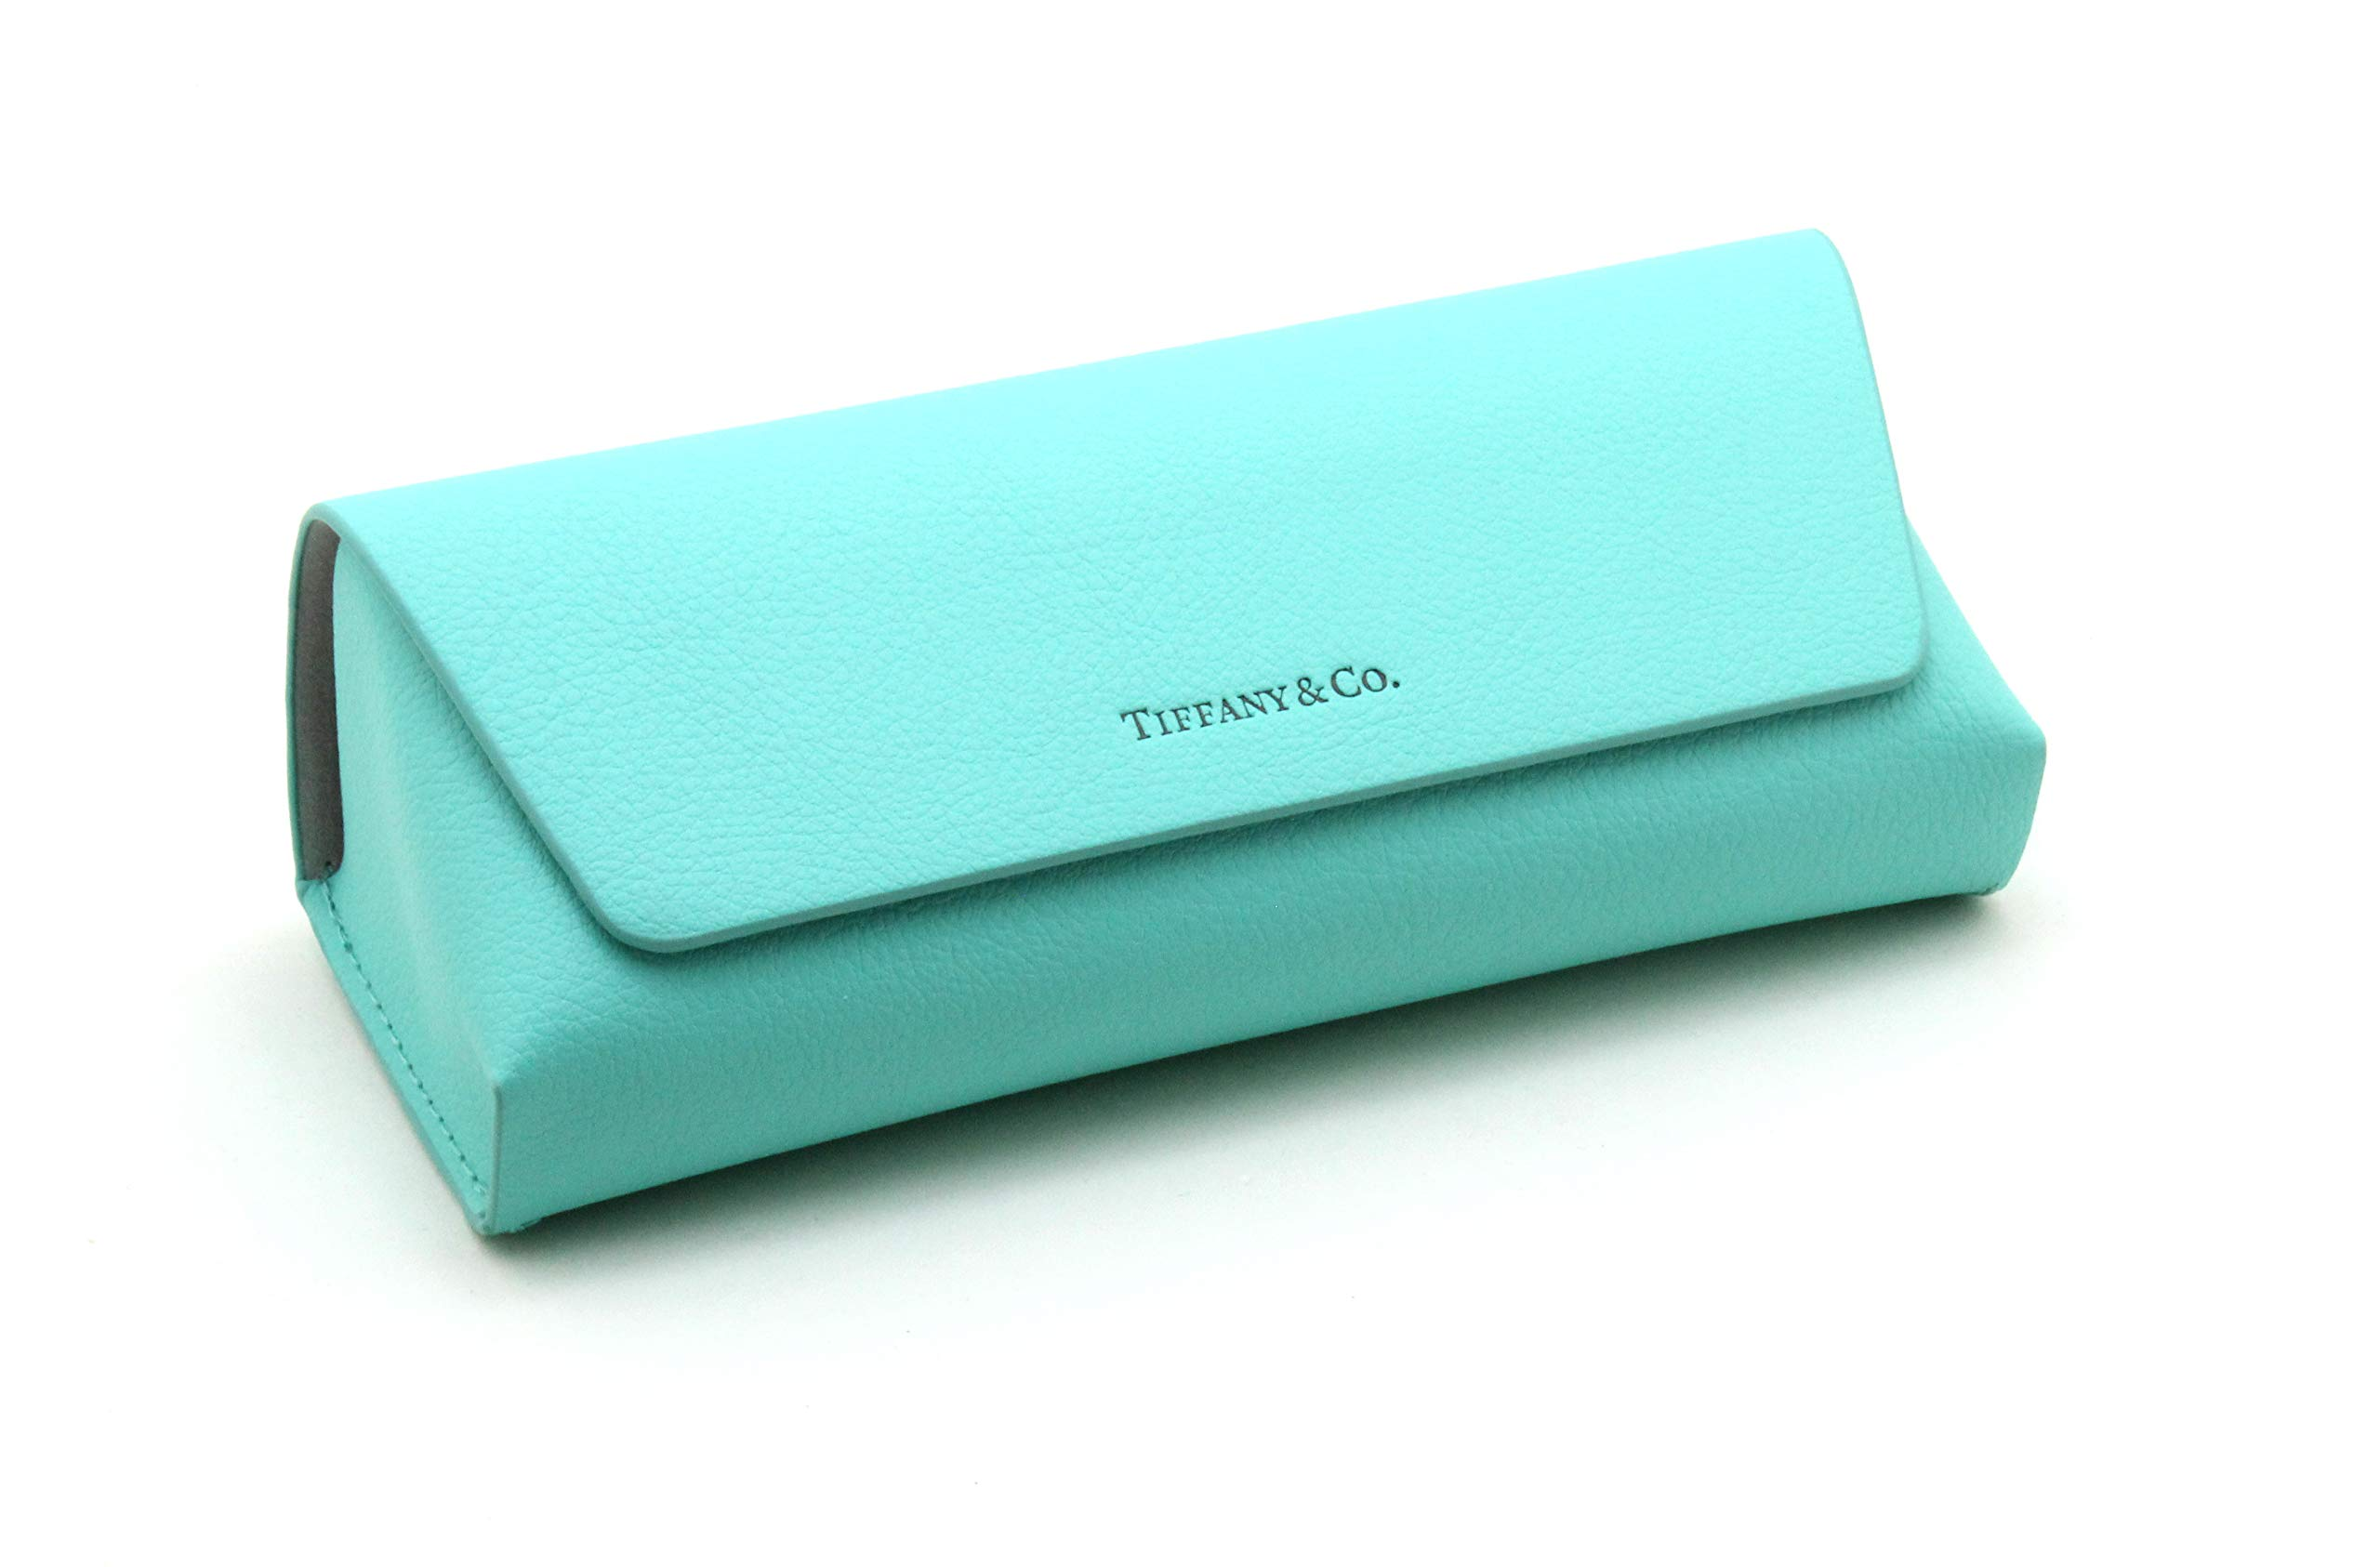 Tiffany & Co. Case for Sunglasses and Eyeglasses w/Original Retail Packaging New 2019 Collection, Large